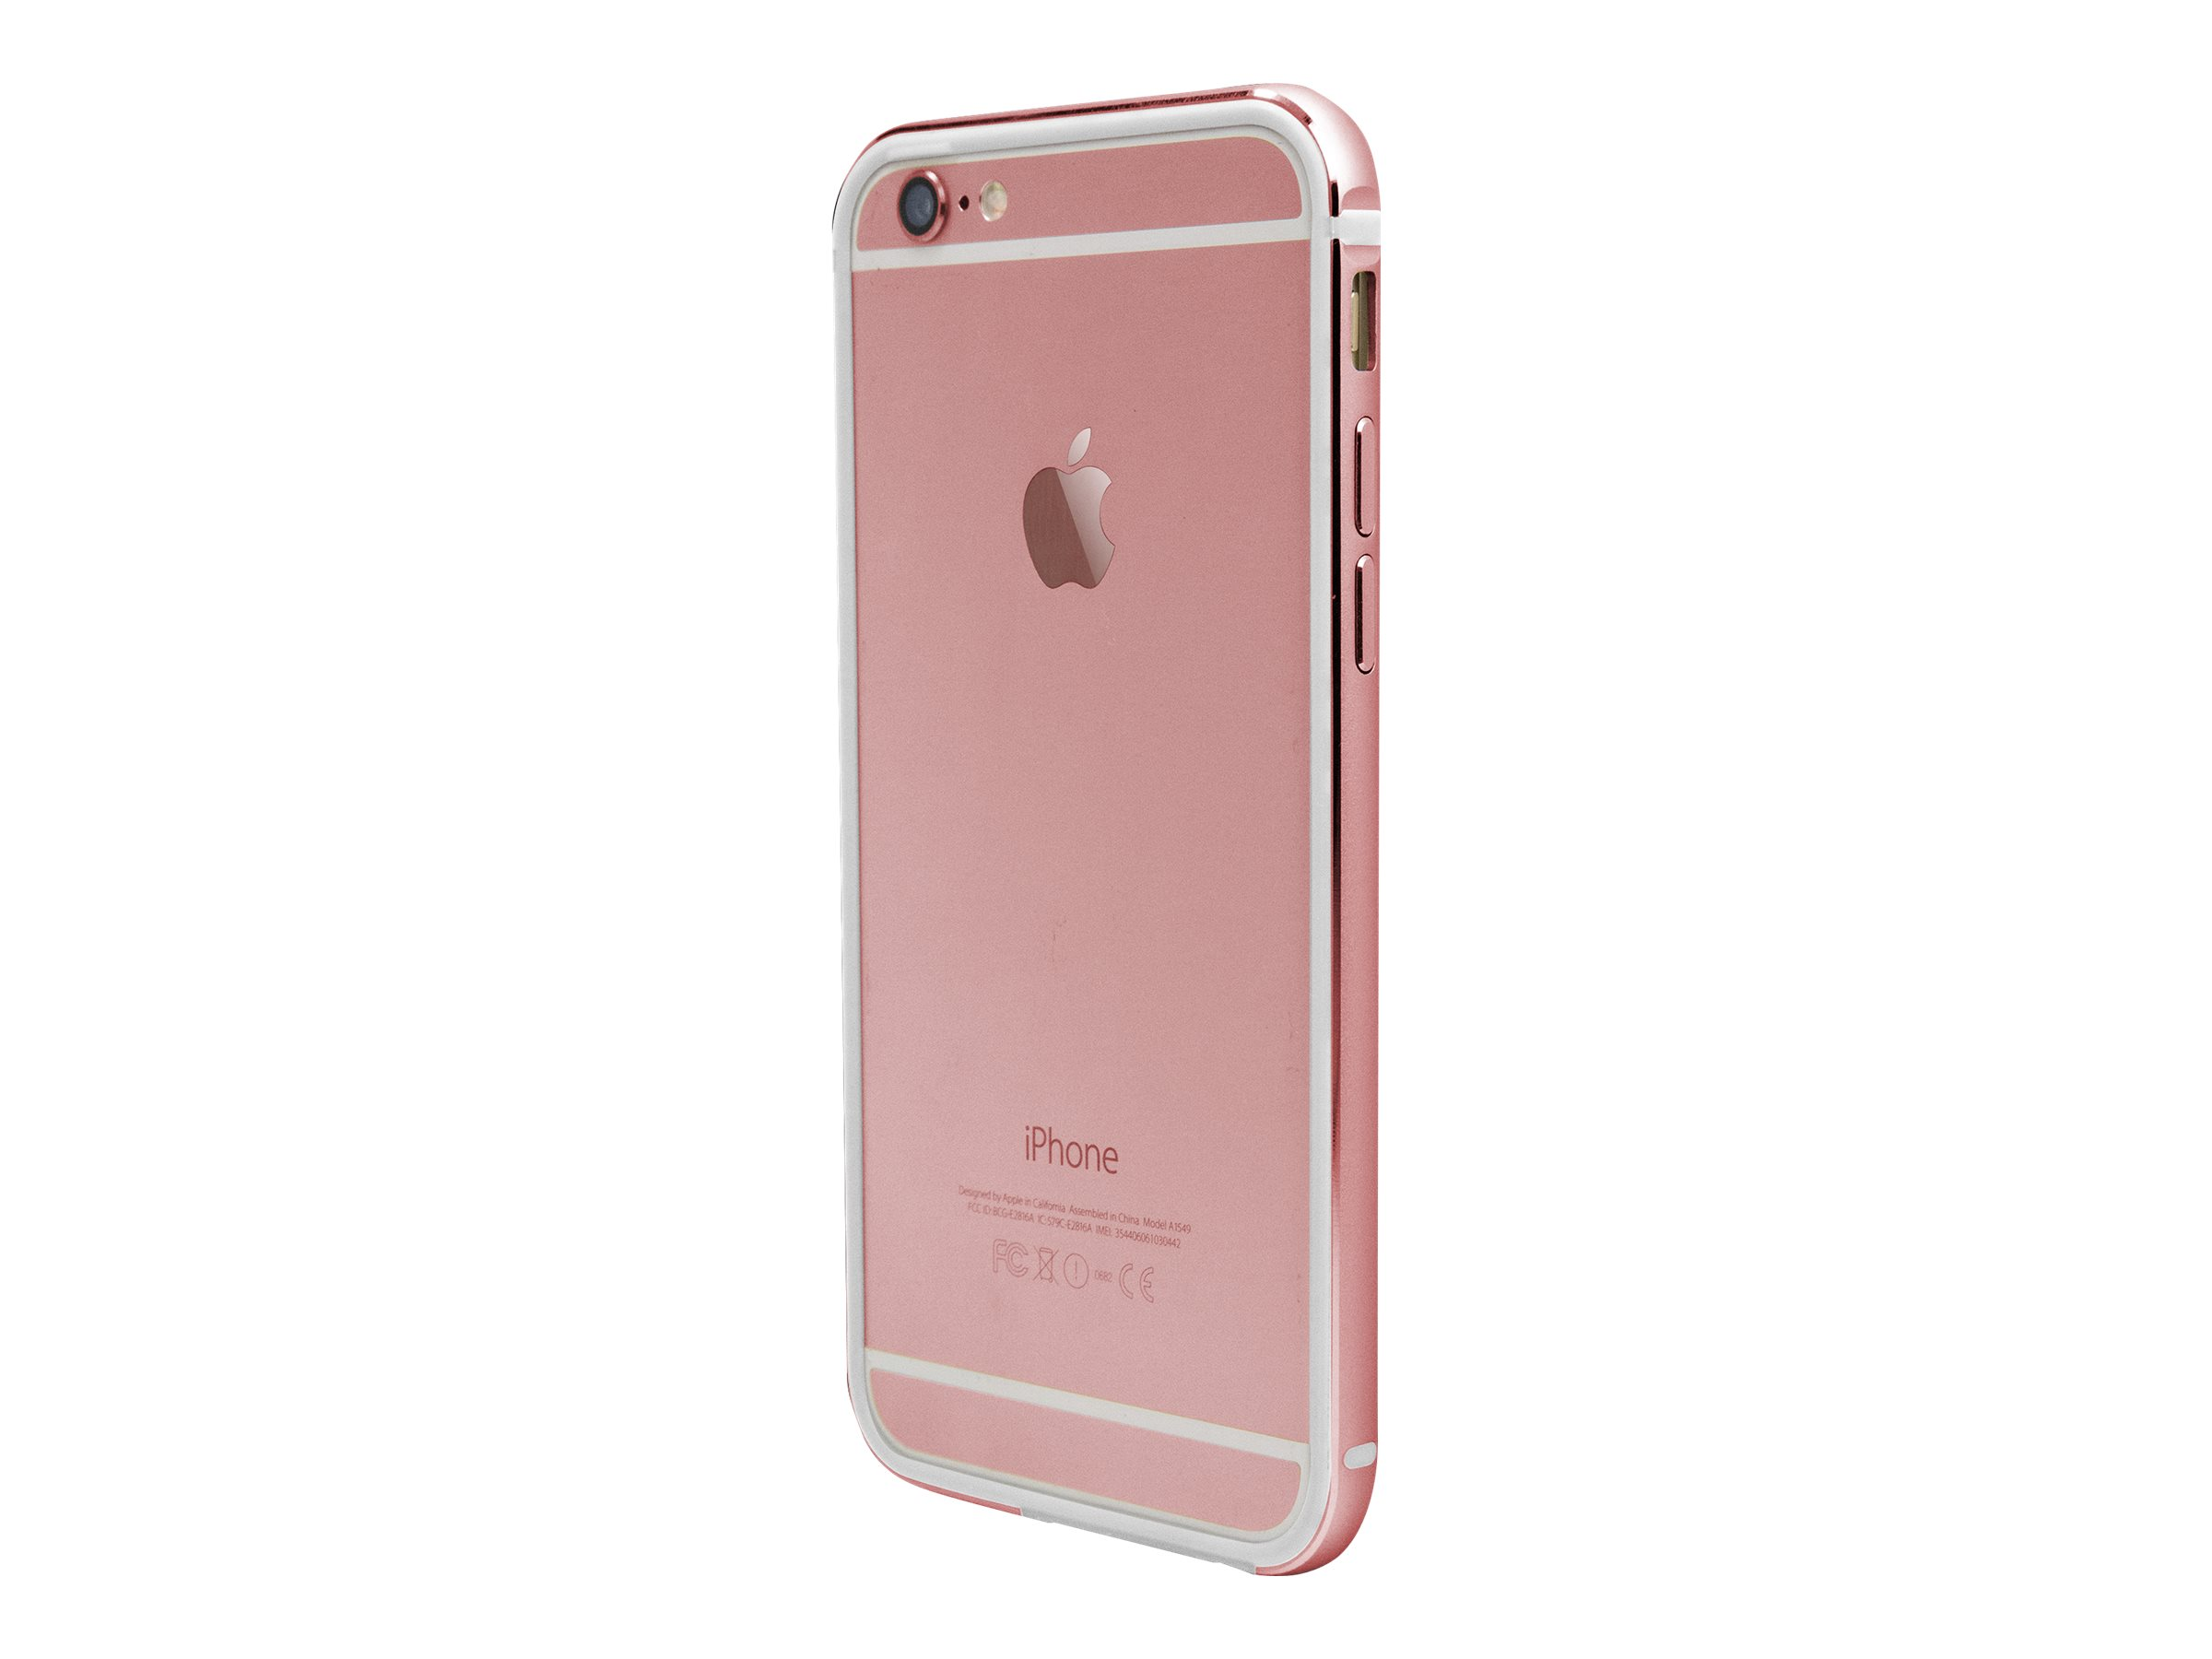 X-Doria Bump Gear -Coque de protection pour iPhone 6, 6s - rose/or